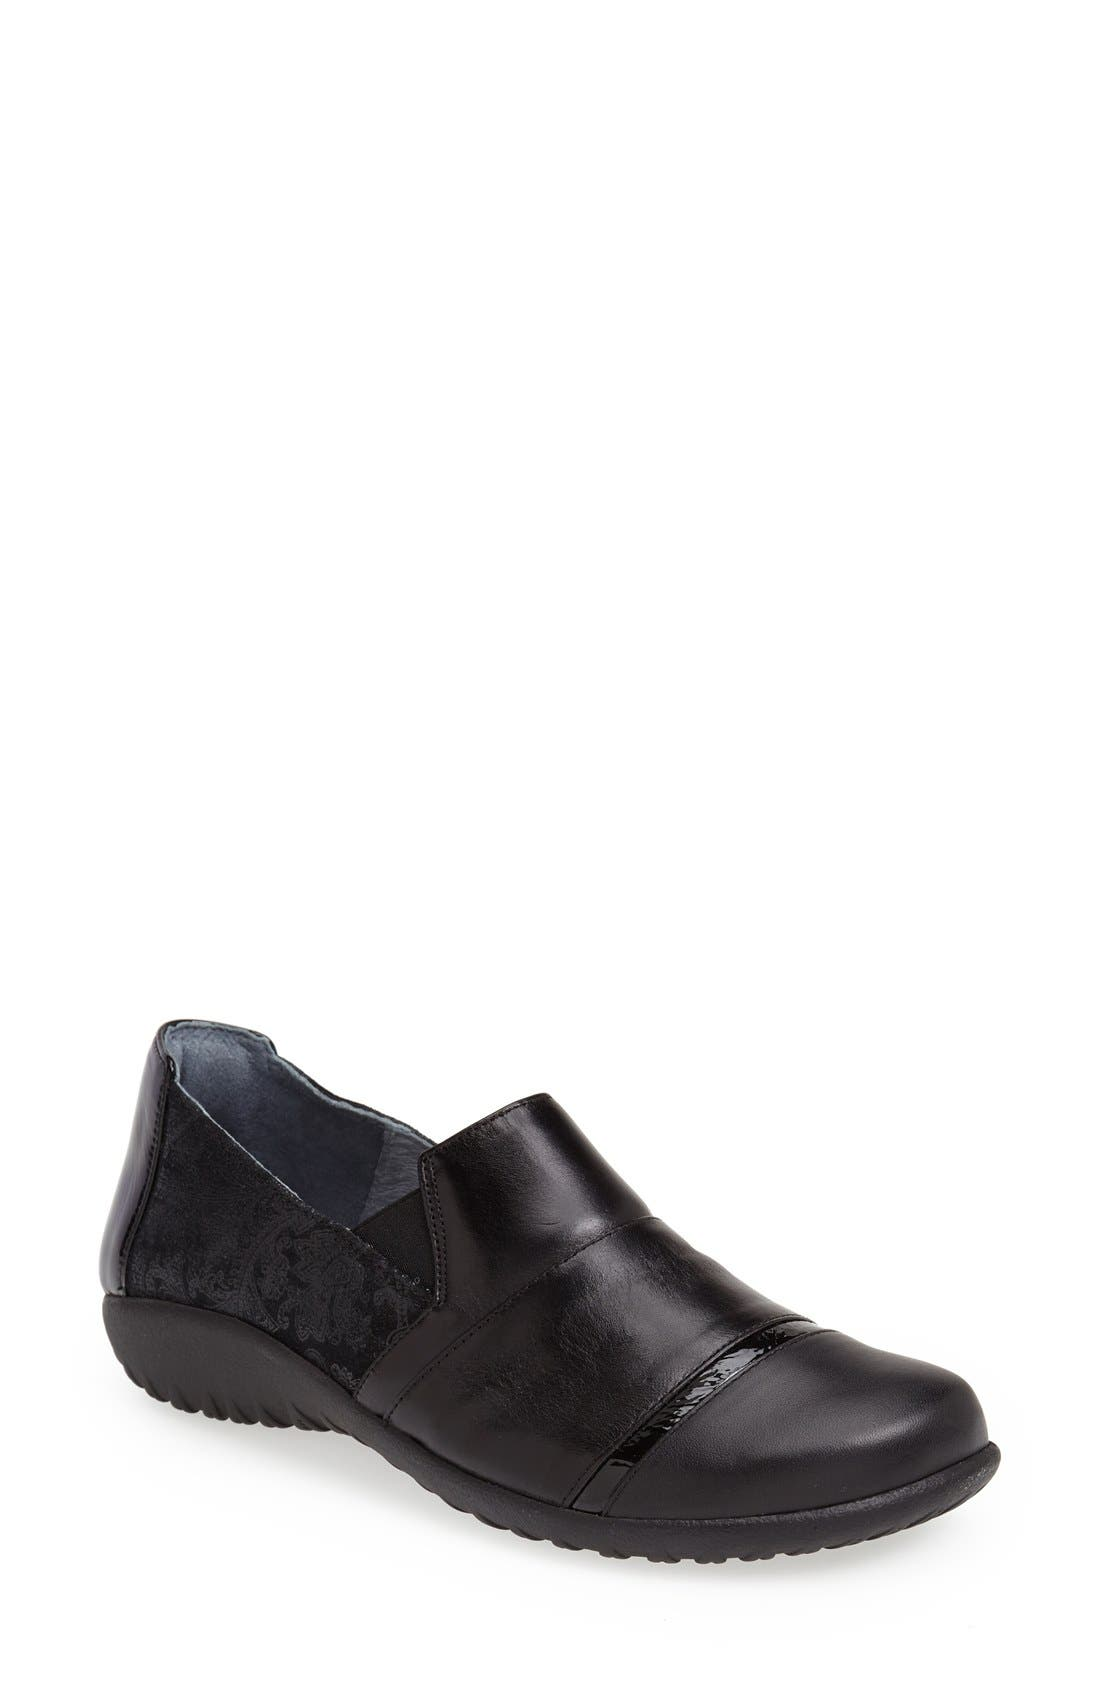 'Miro' Loafer,                         Main,                         color, Black Lace